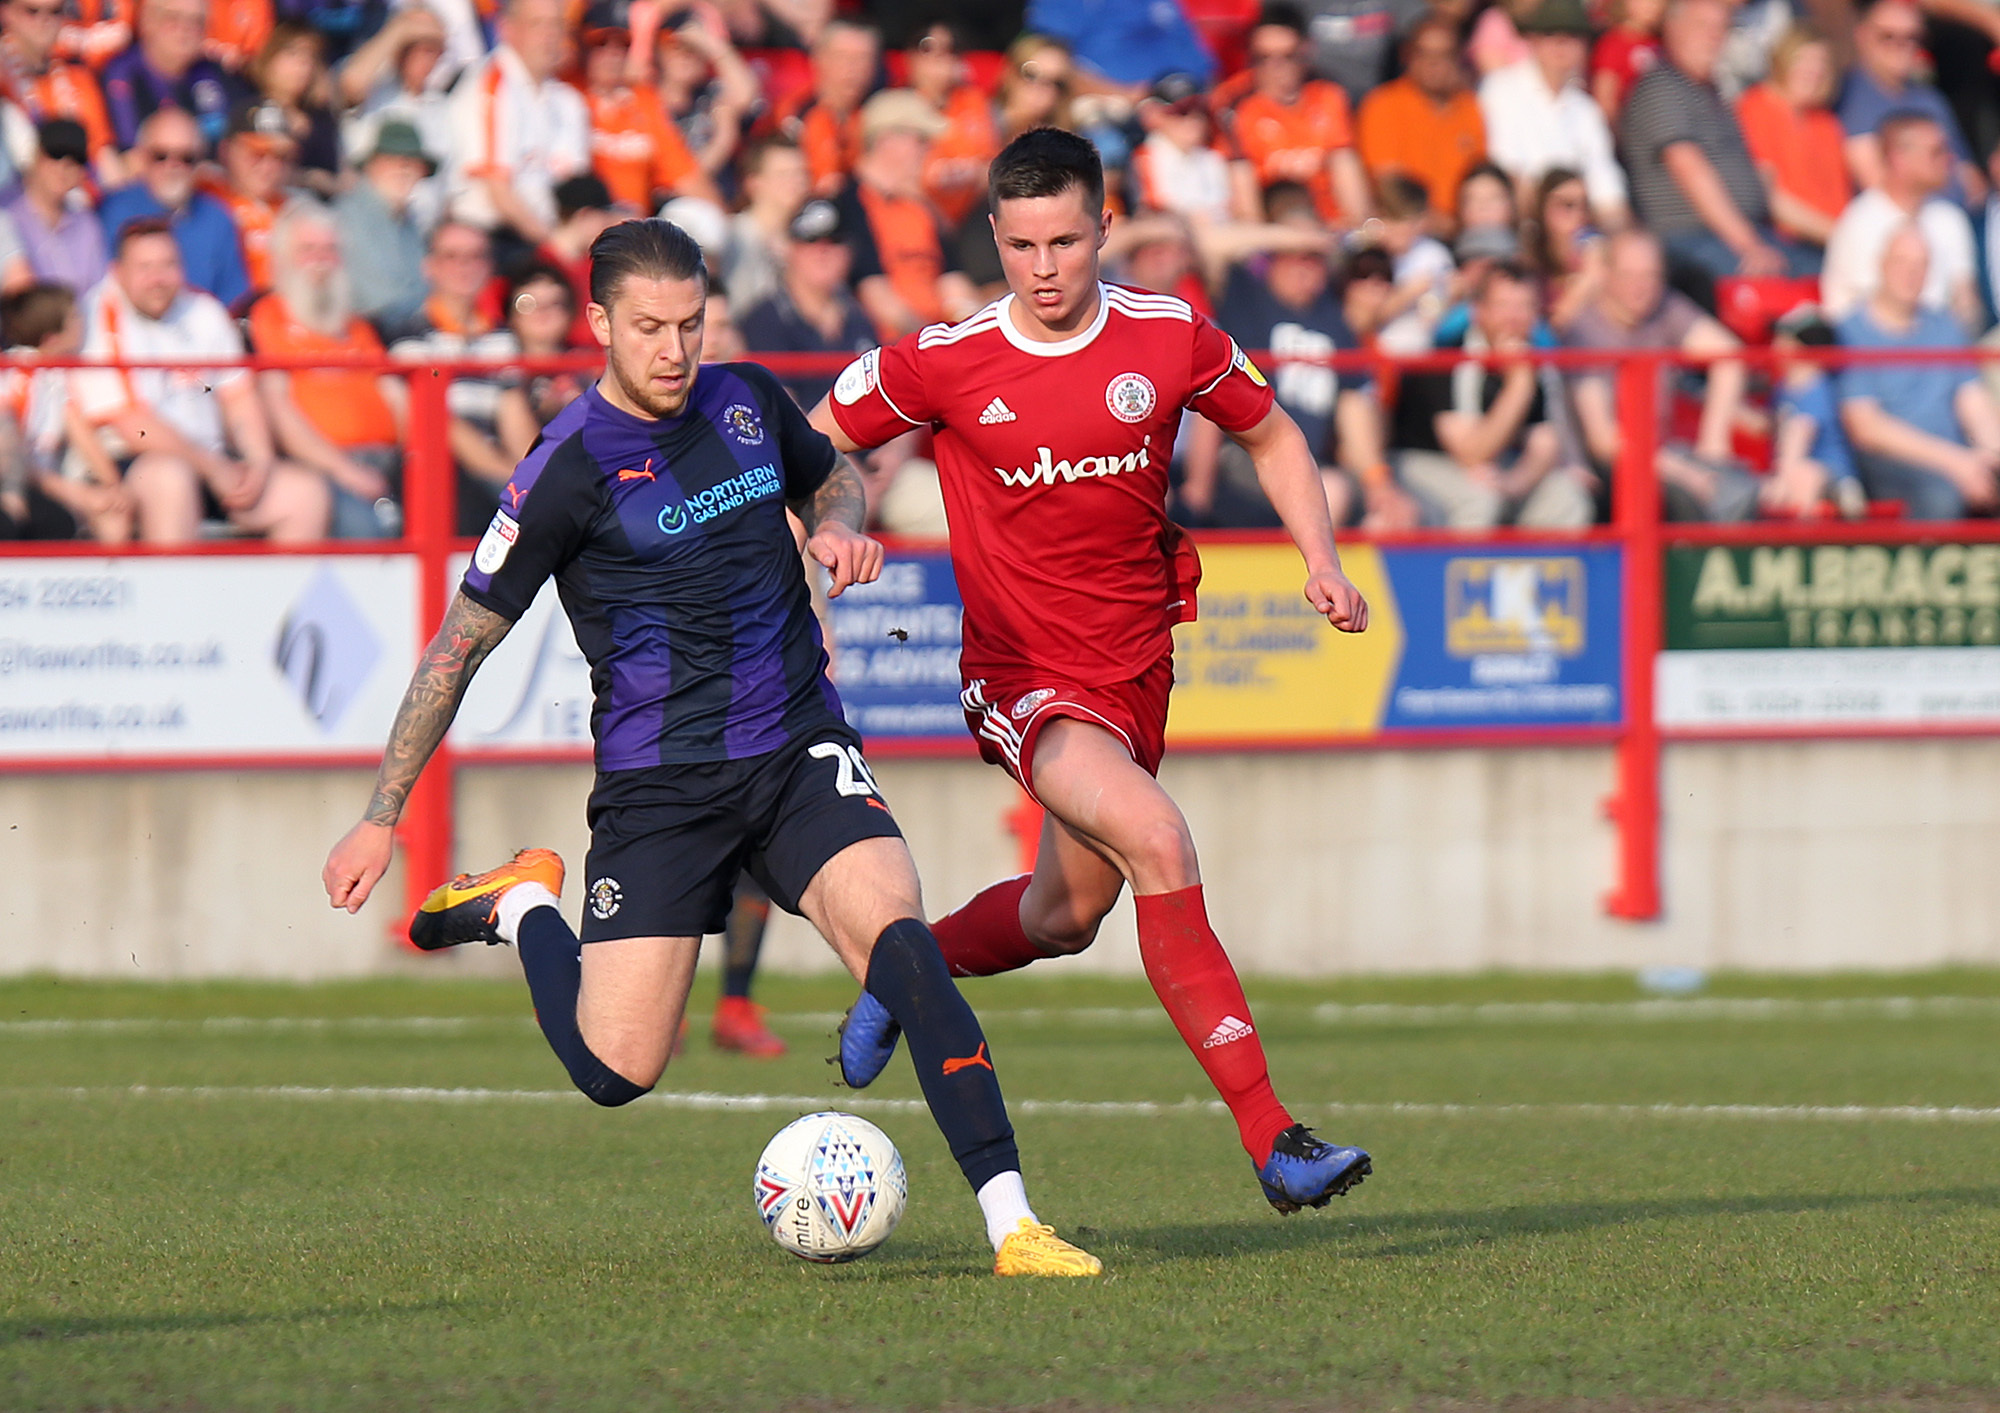 Callum Johnson in action against Luton where Stanley had to battle with 10 men. Picture: KIPAX